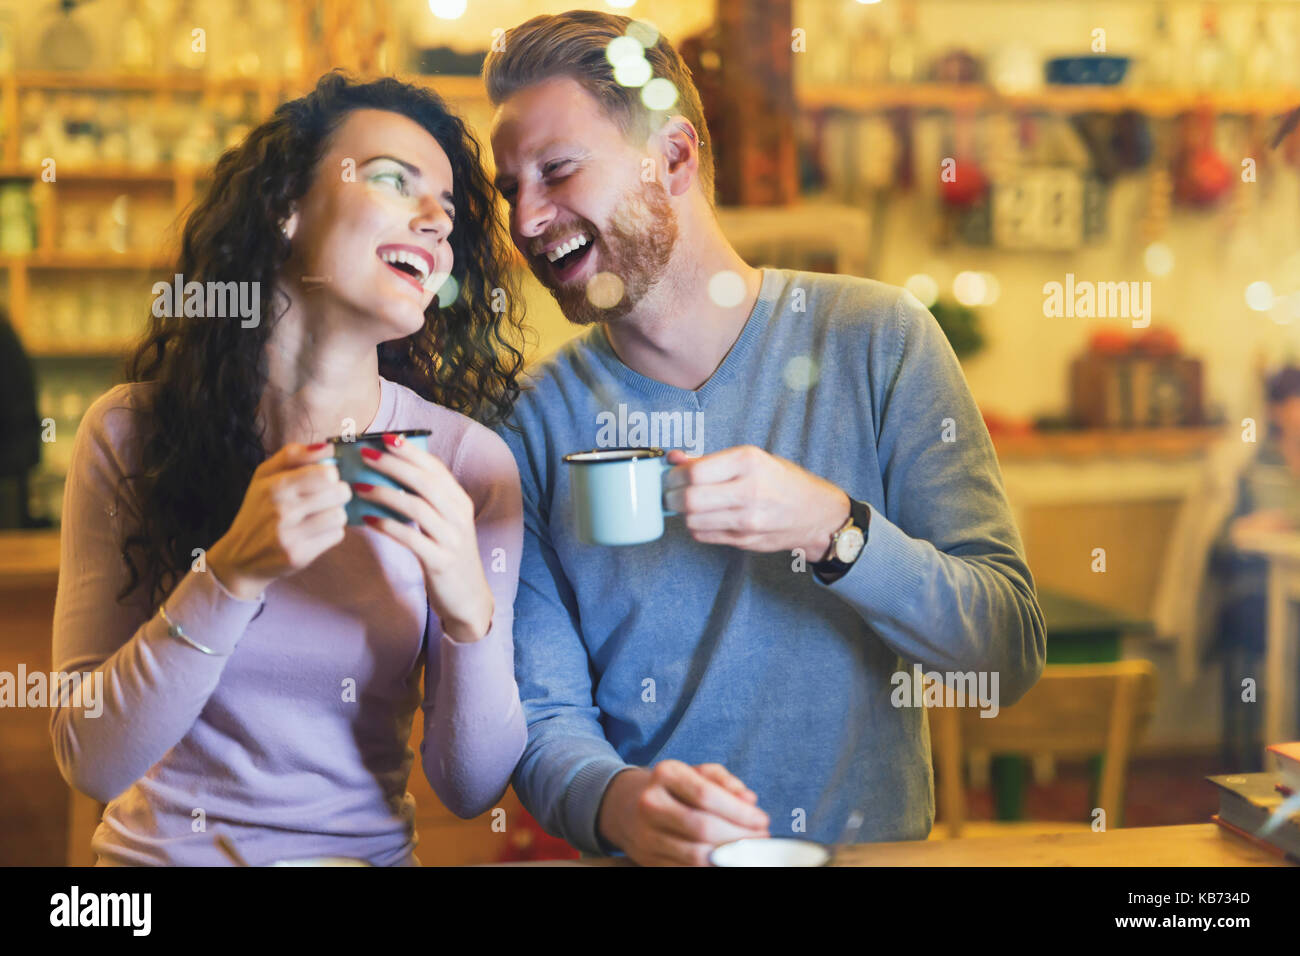 Coffee shop dating site